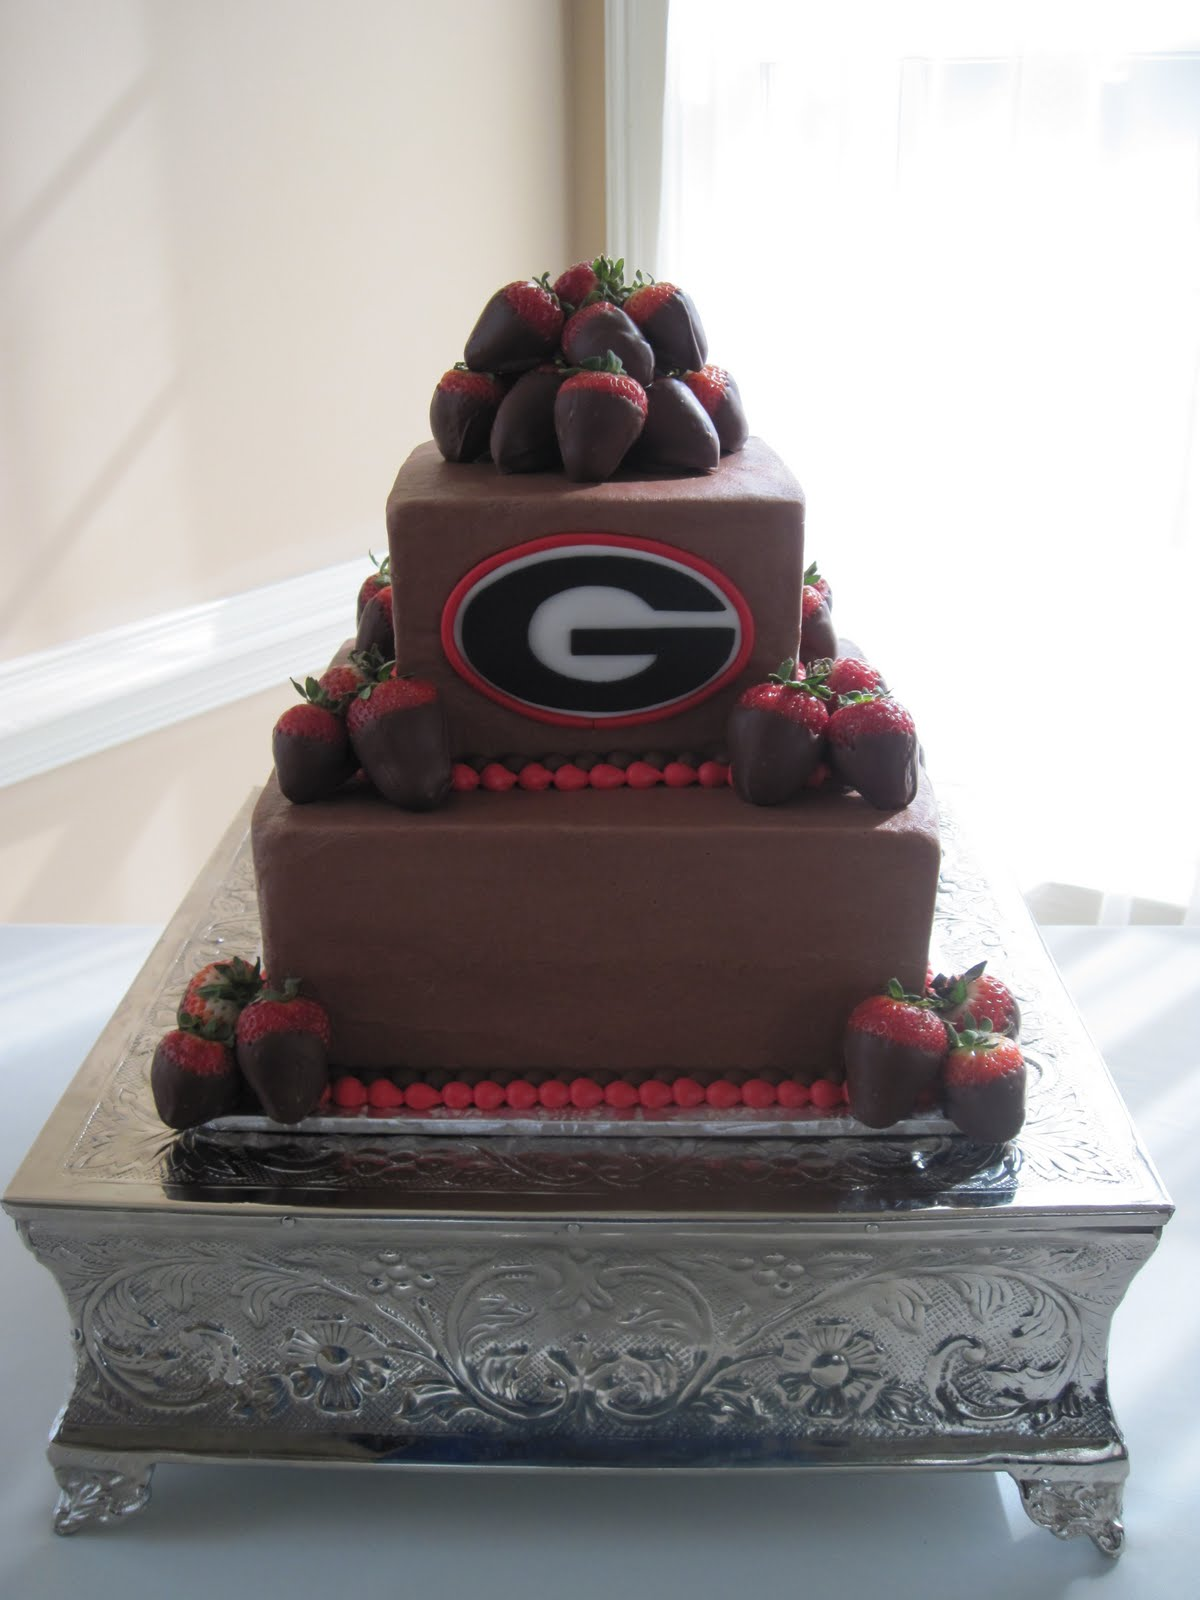 Heather S Cakes And Confections Uga Groom S Cake